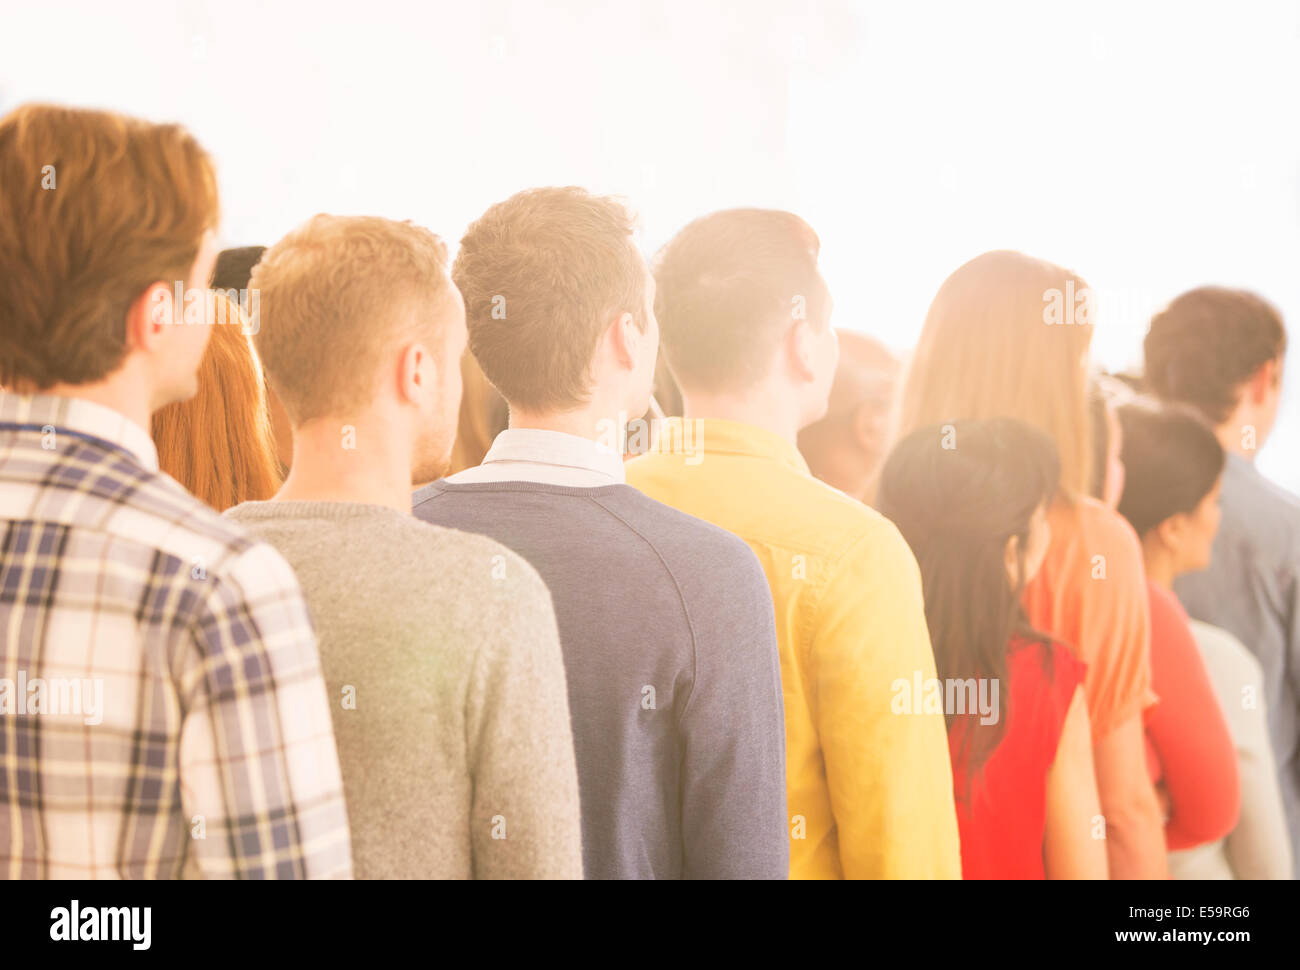 Crowd waiting in queue - Stock Image